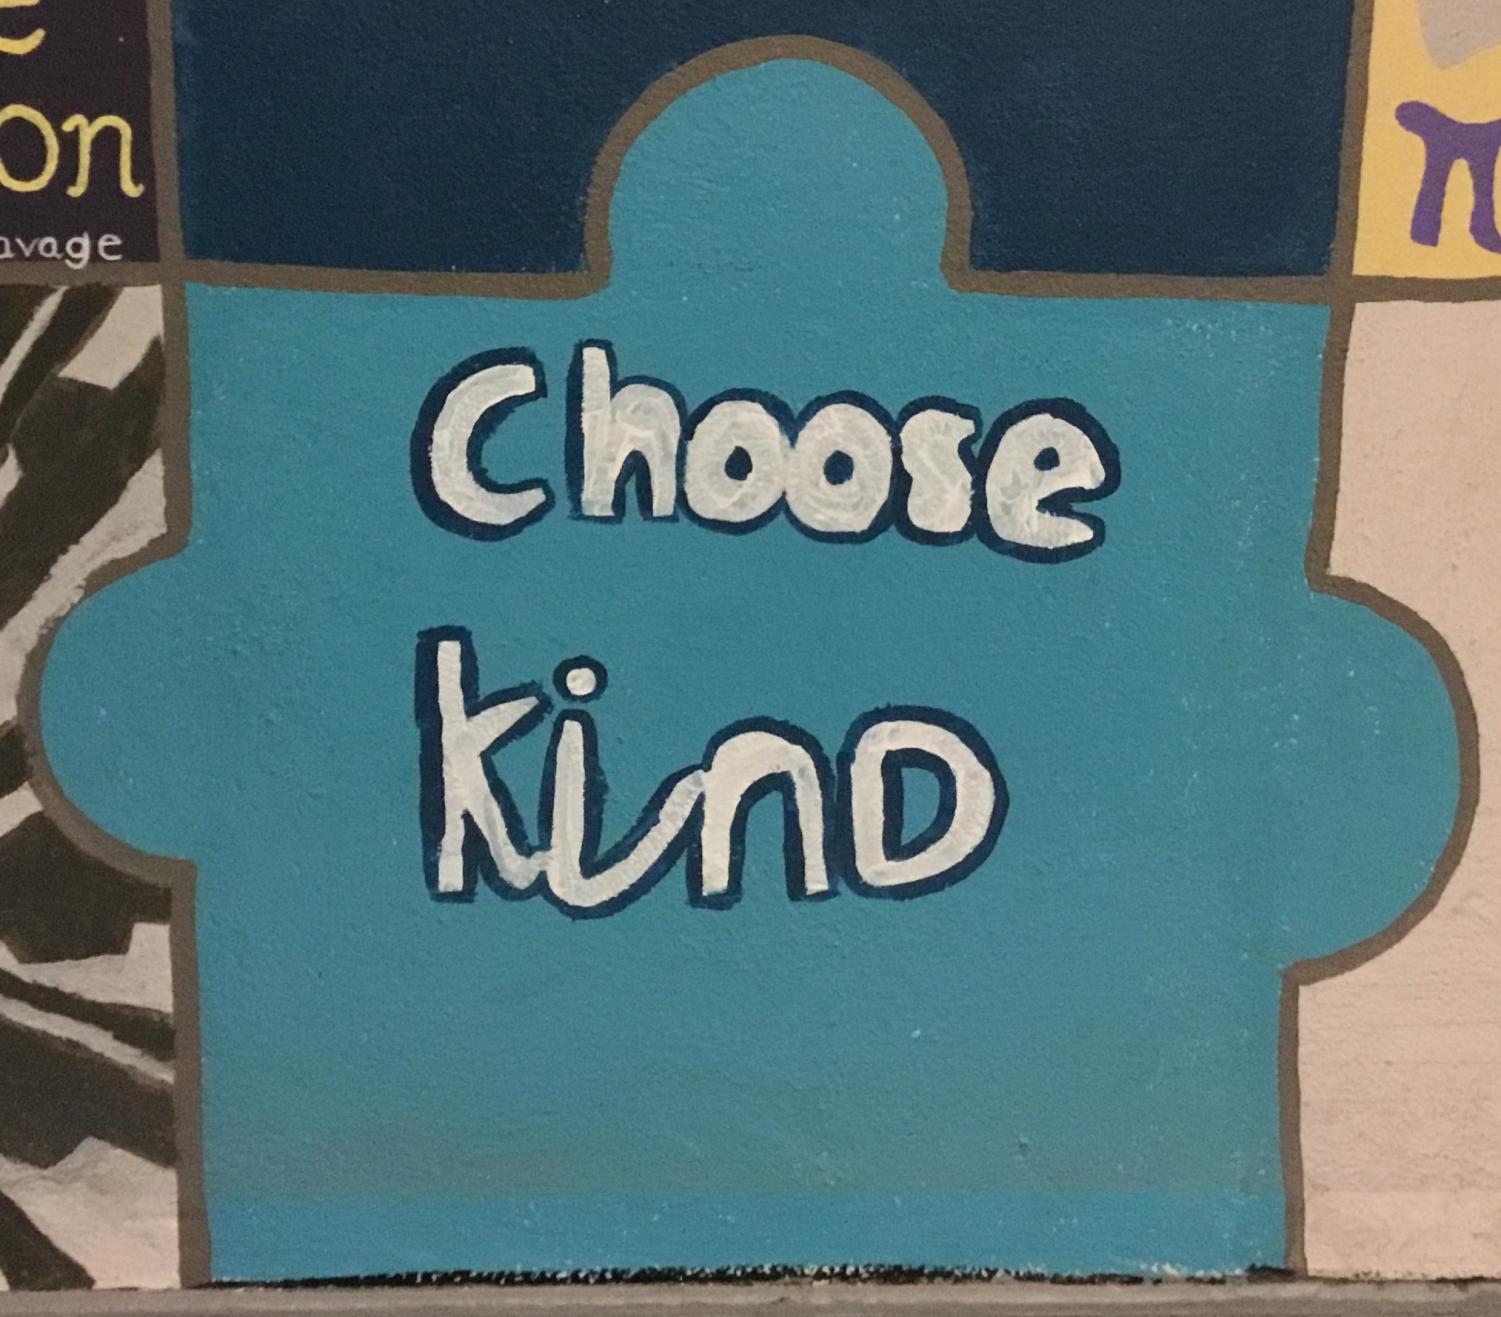 CHOOSING KINDNESS: By choosing kindness, we can solve an epidemic